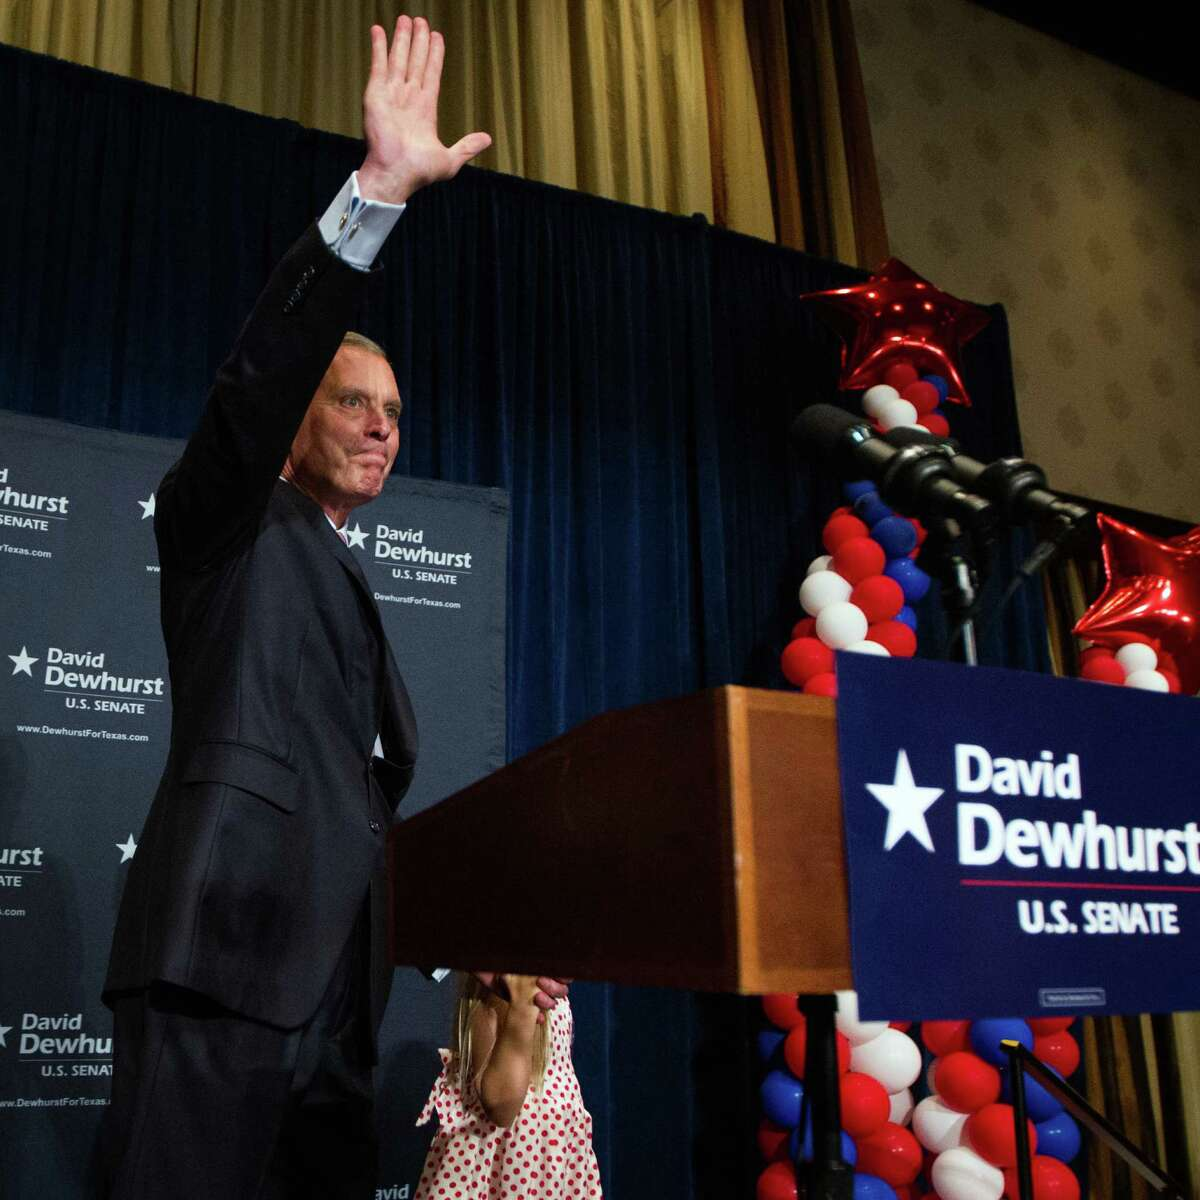 U.S. Senate candidate David Dewhurst waves to a crowd of supporters at the Intercontinental Hotel during a primary watch party on Tuesday, May 29, 2012, in Houston.